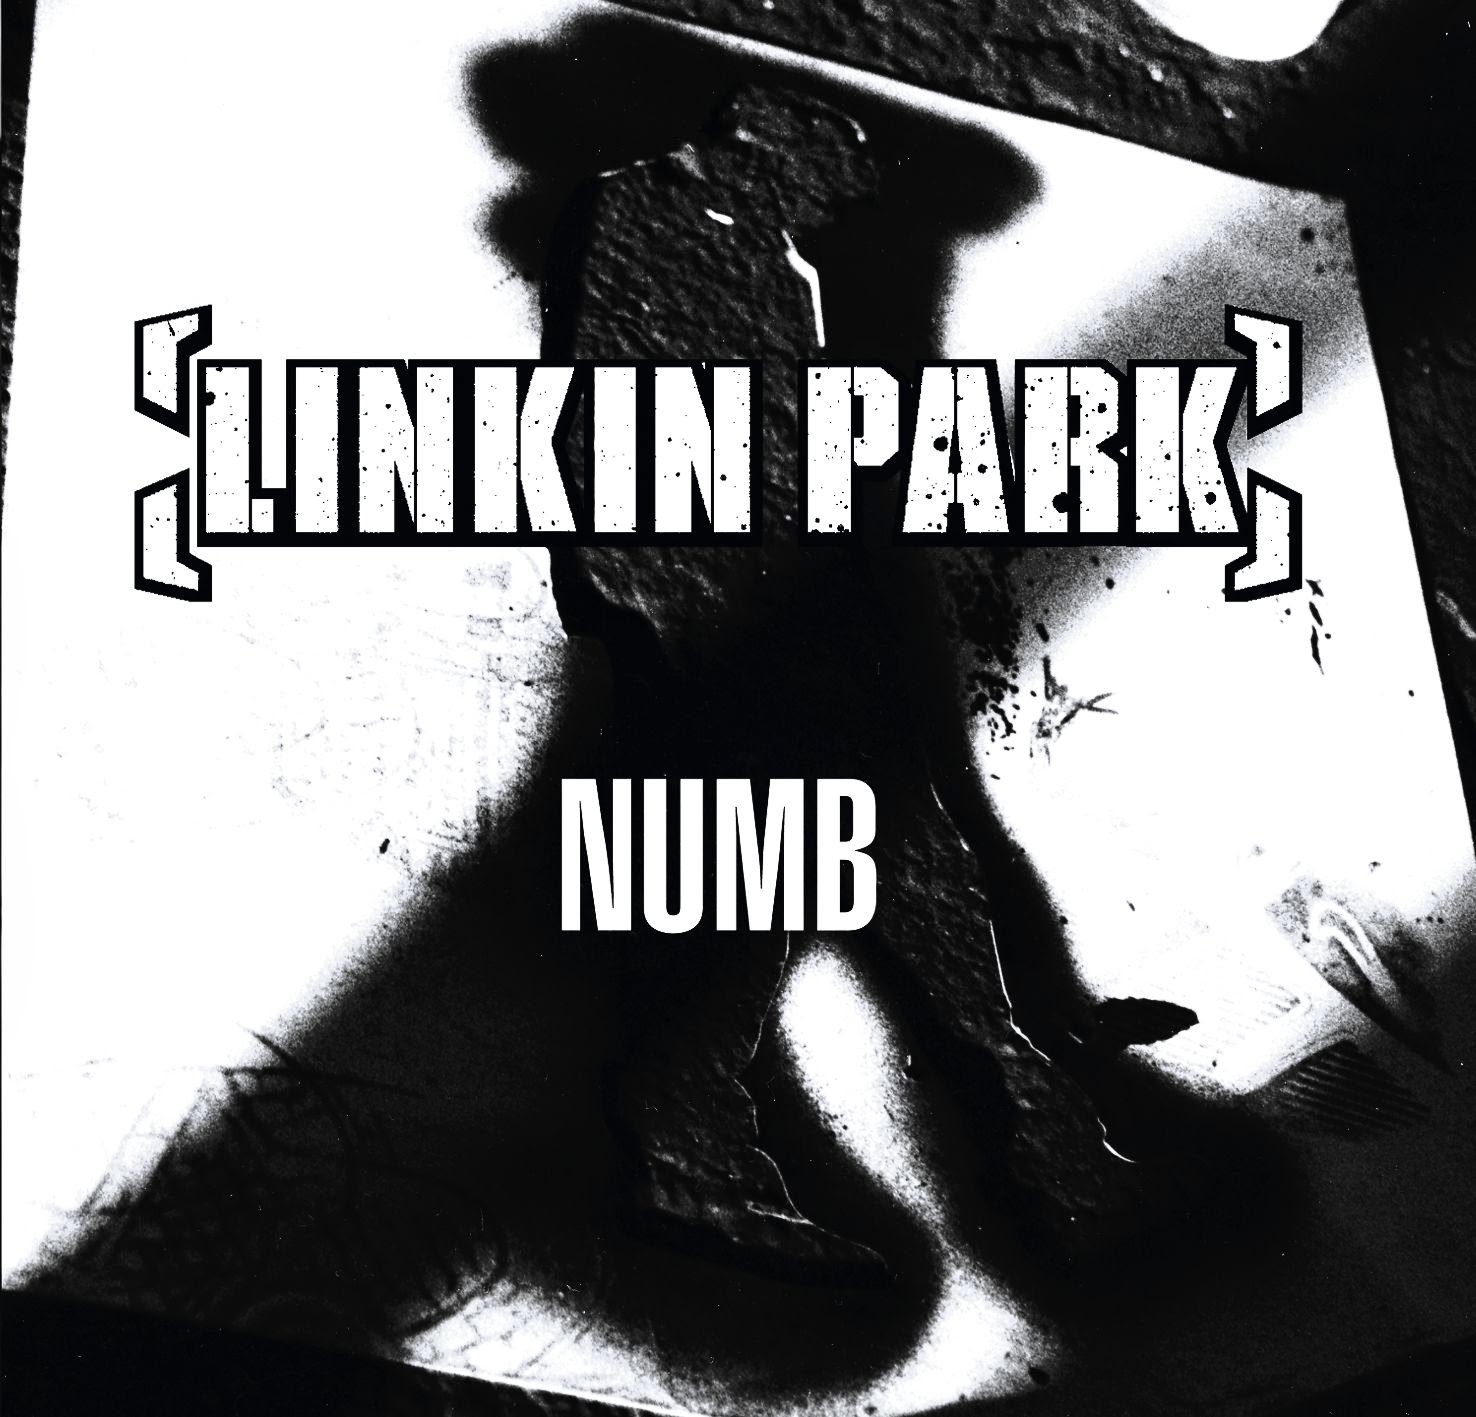 Download video klip linkin park numb